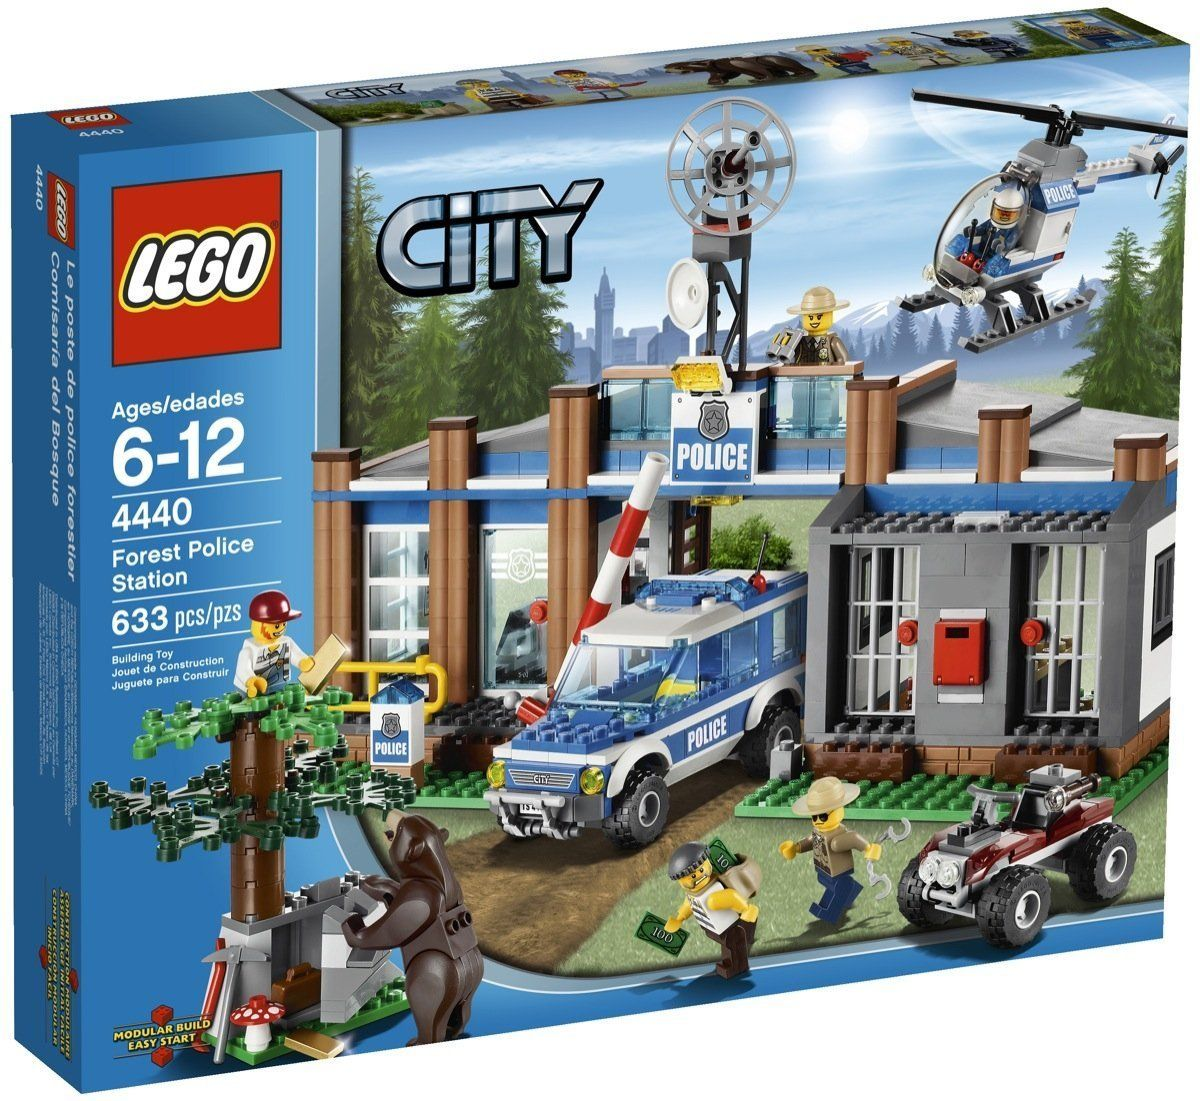 Lego City 4440 Forest Police Station Nib New In Box Headquarters 7744